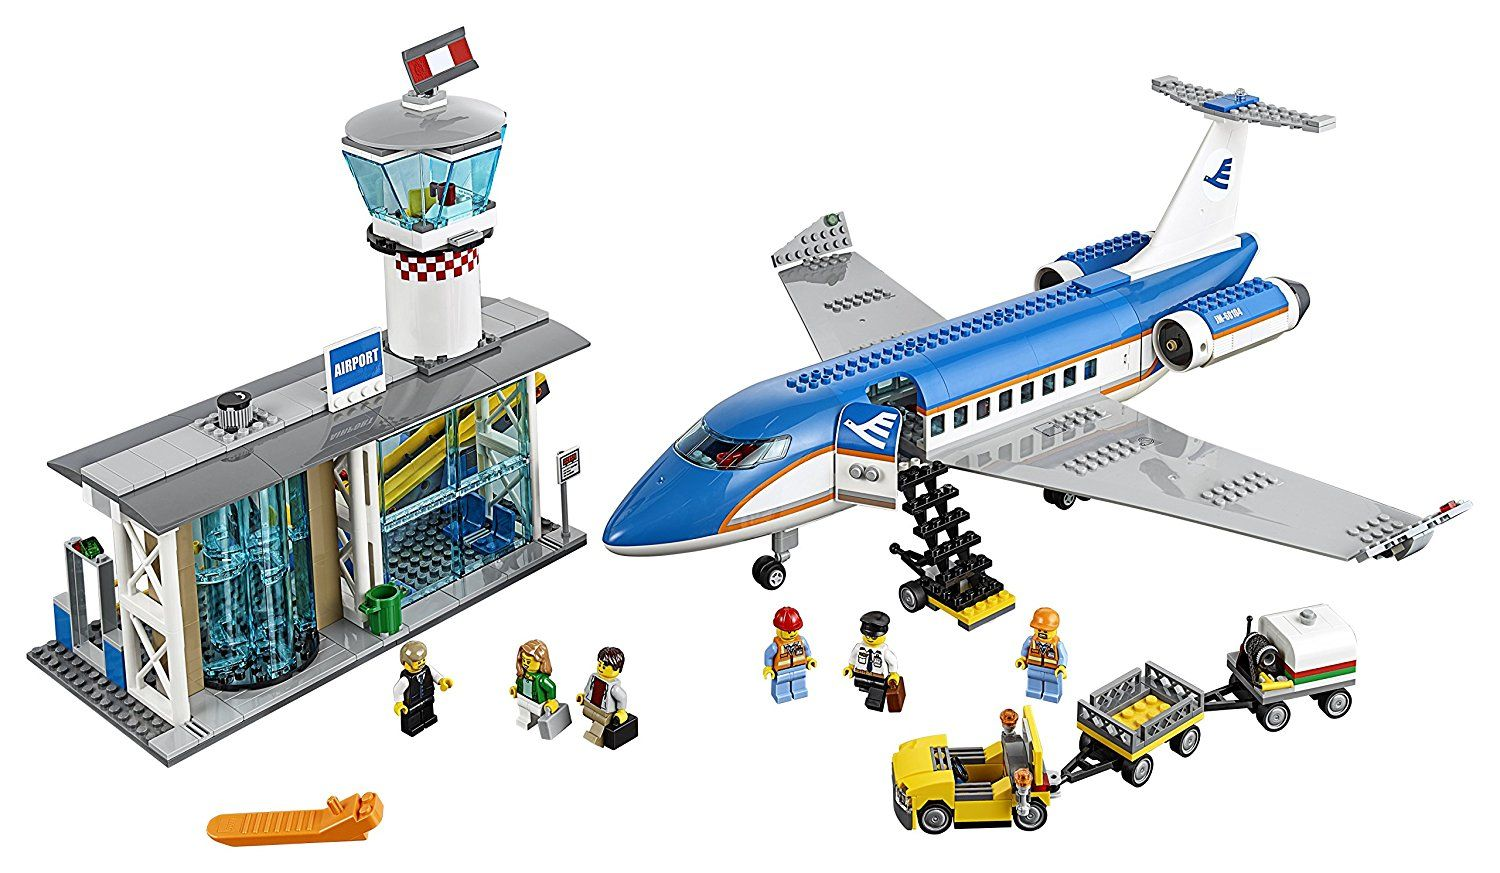 Pin lego 60032 city the lego summer wave in official images on - Amazon Com Lego City Airport 60104 Airport Passenger Terminal Building Kit 694 Piece